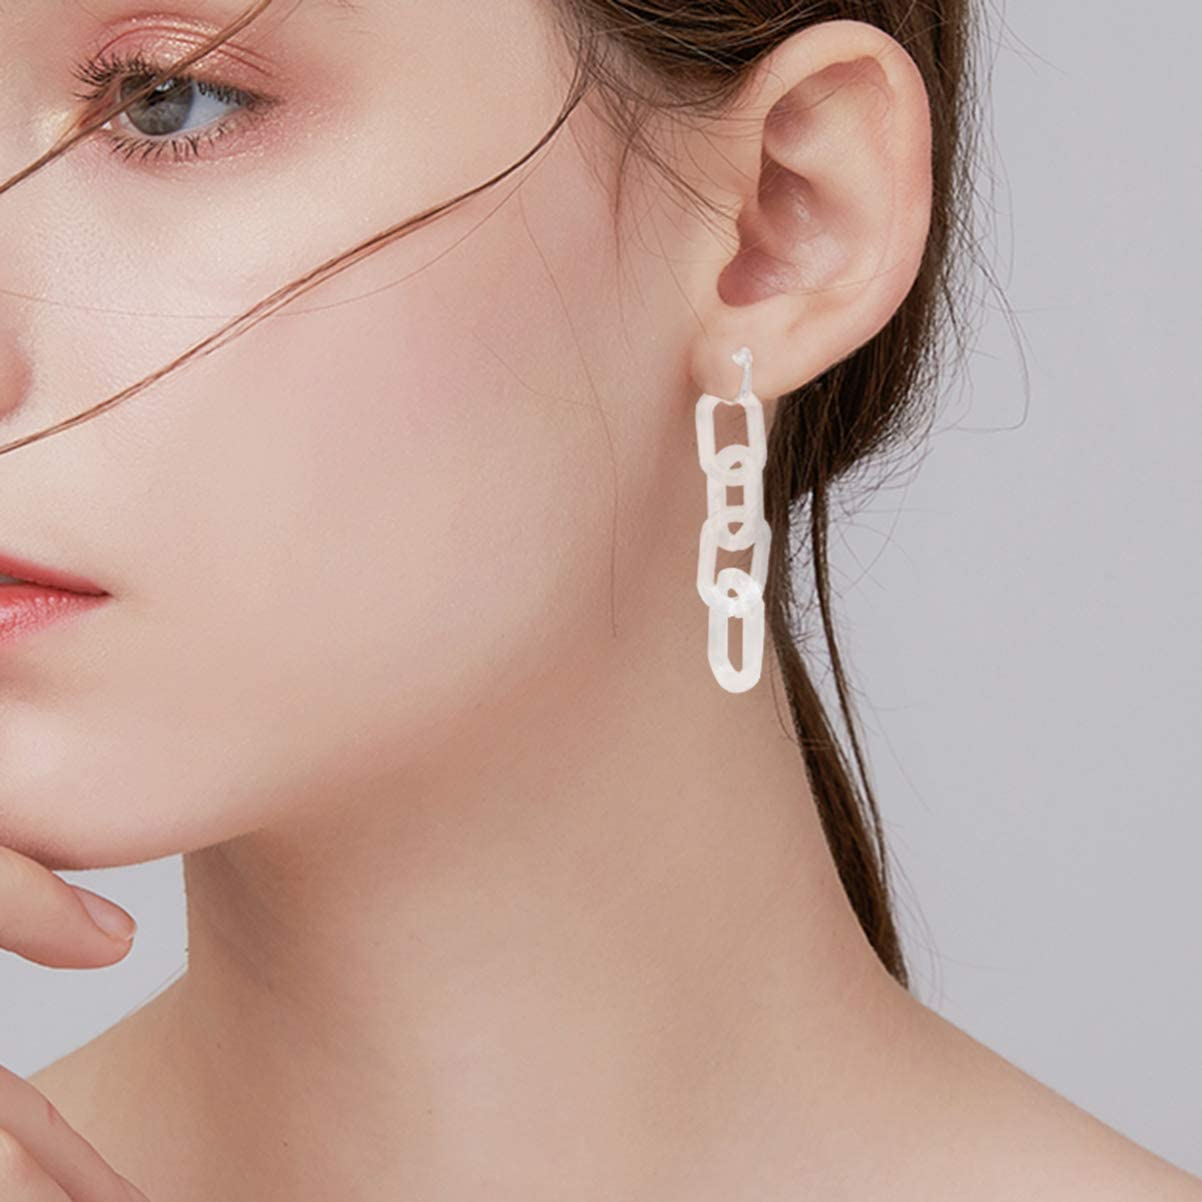 Happyyami 1 Pair Lucite Chain Clip On Earrings Resin Acrylic Chain Dangling Ear Clip Fashion Personality Ear Jewelry Gift for Women Girls (Transparent)